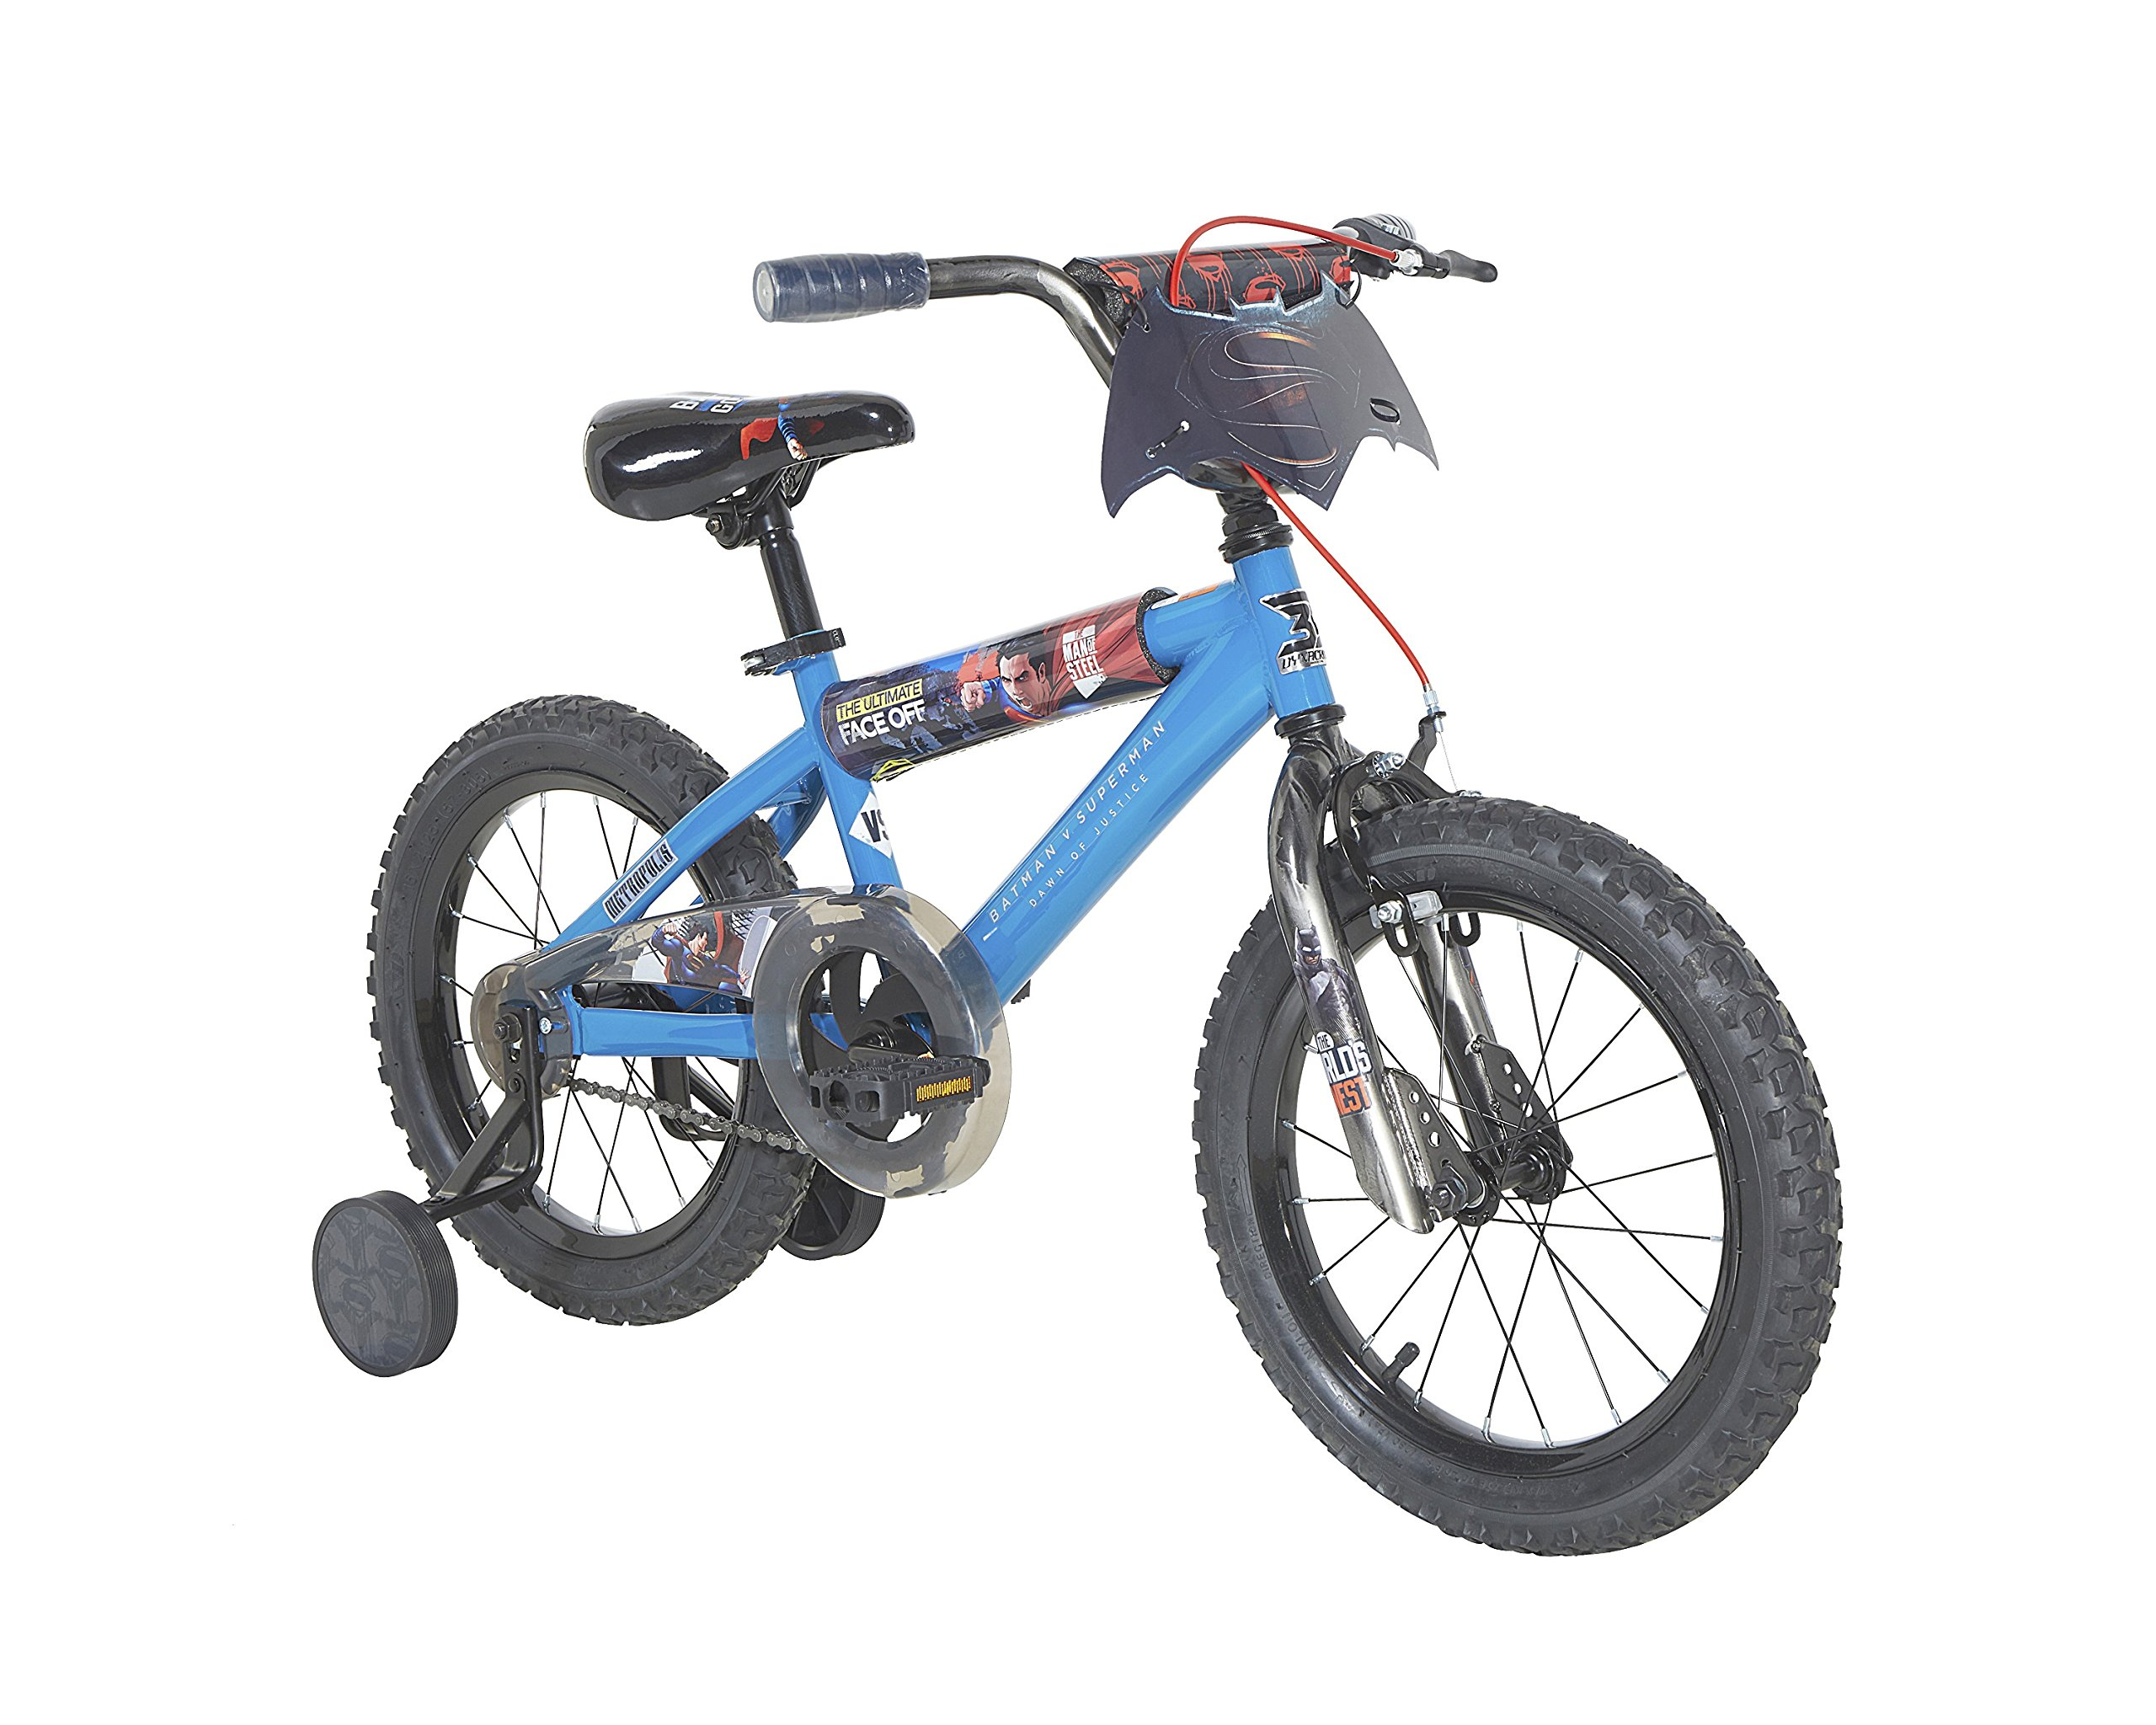 Batman vs Superman Boys Dynacraft Bike, Blue/Black/Red, 16''